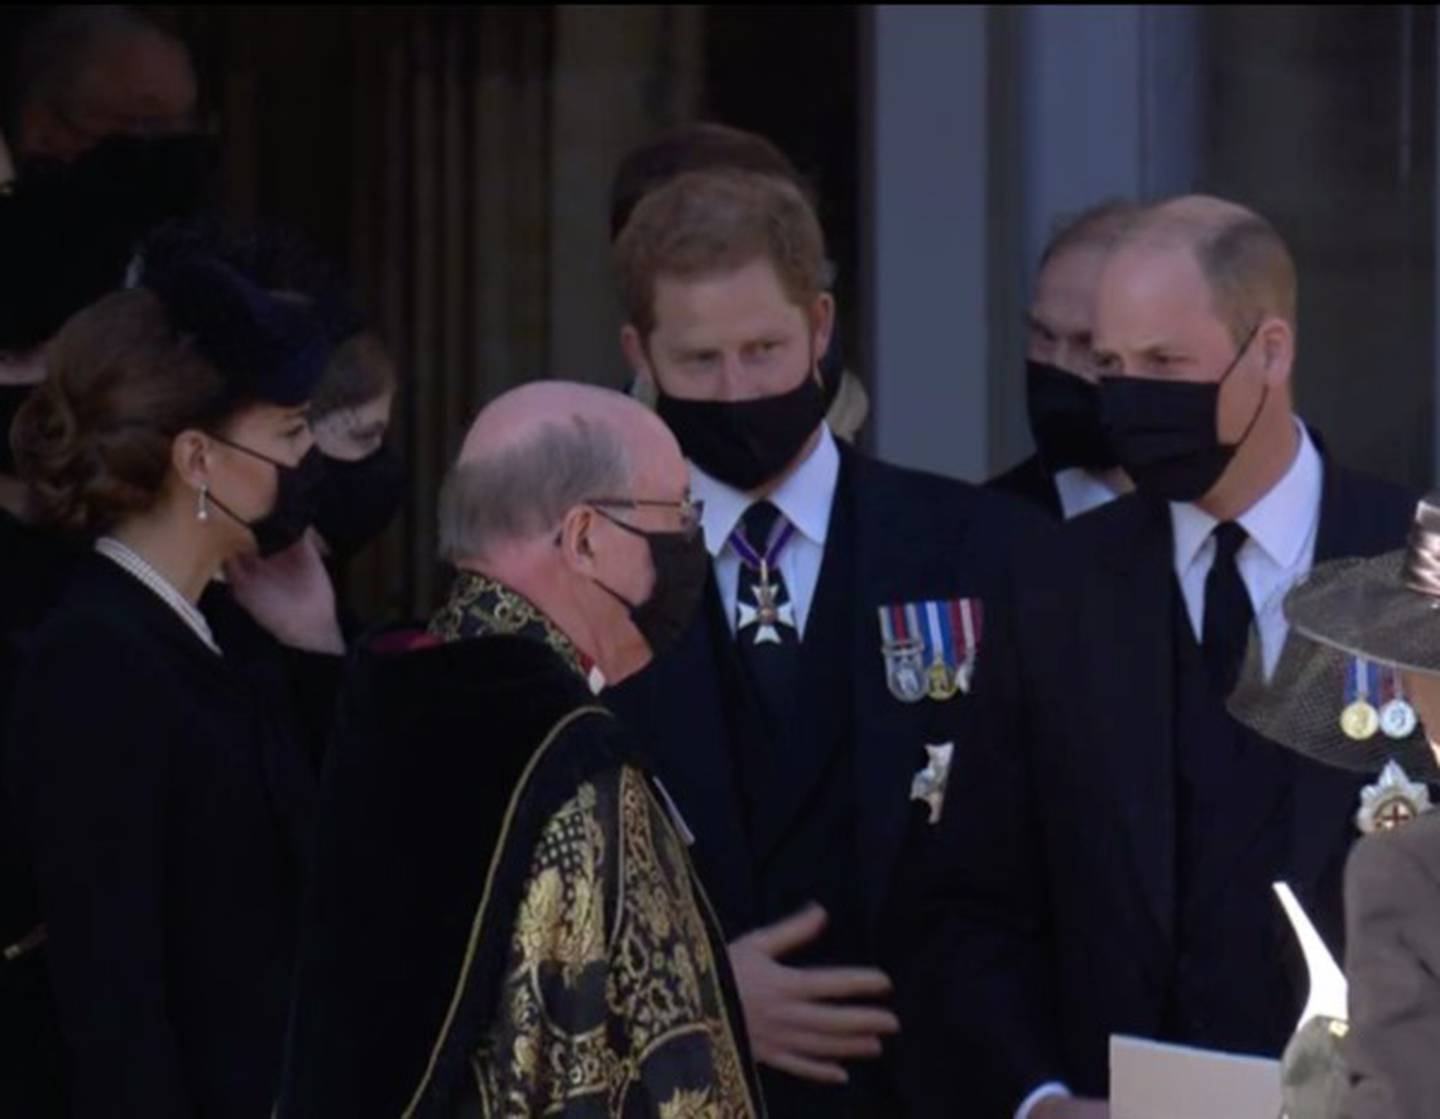 The brothers were seen standing side-by-side as they spoke to the Archbishop of Canterbury after Prince Philip's funeral. Photo / BBC